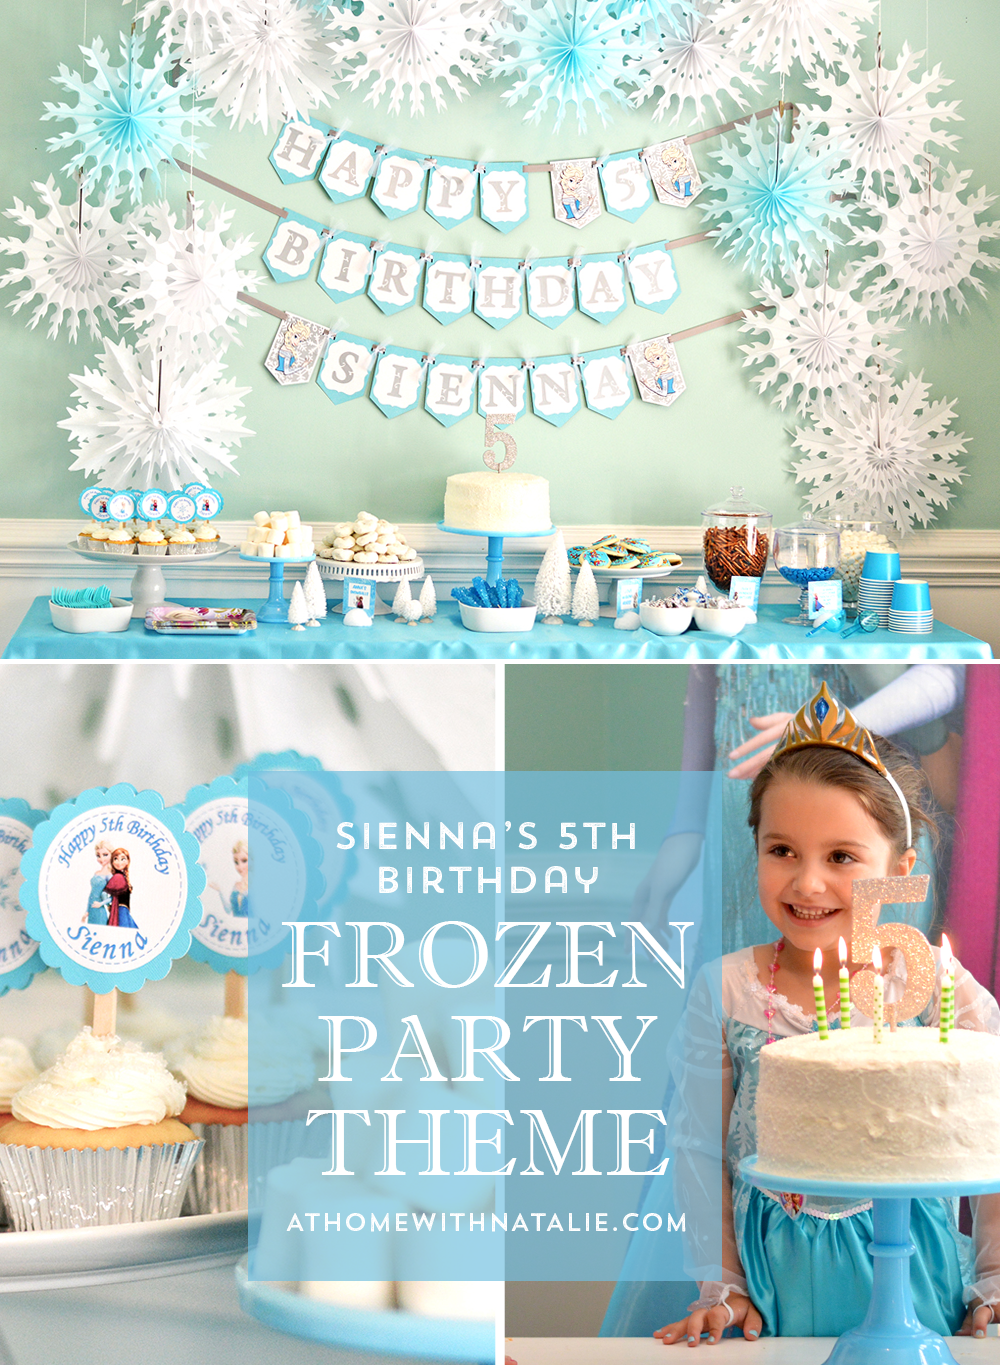 Siennas 5th Birthday A Frozen Party At Home With Natalie